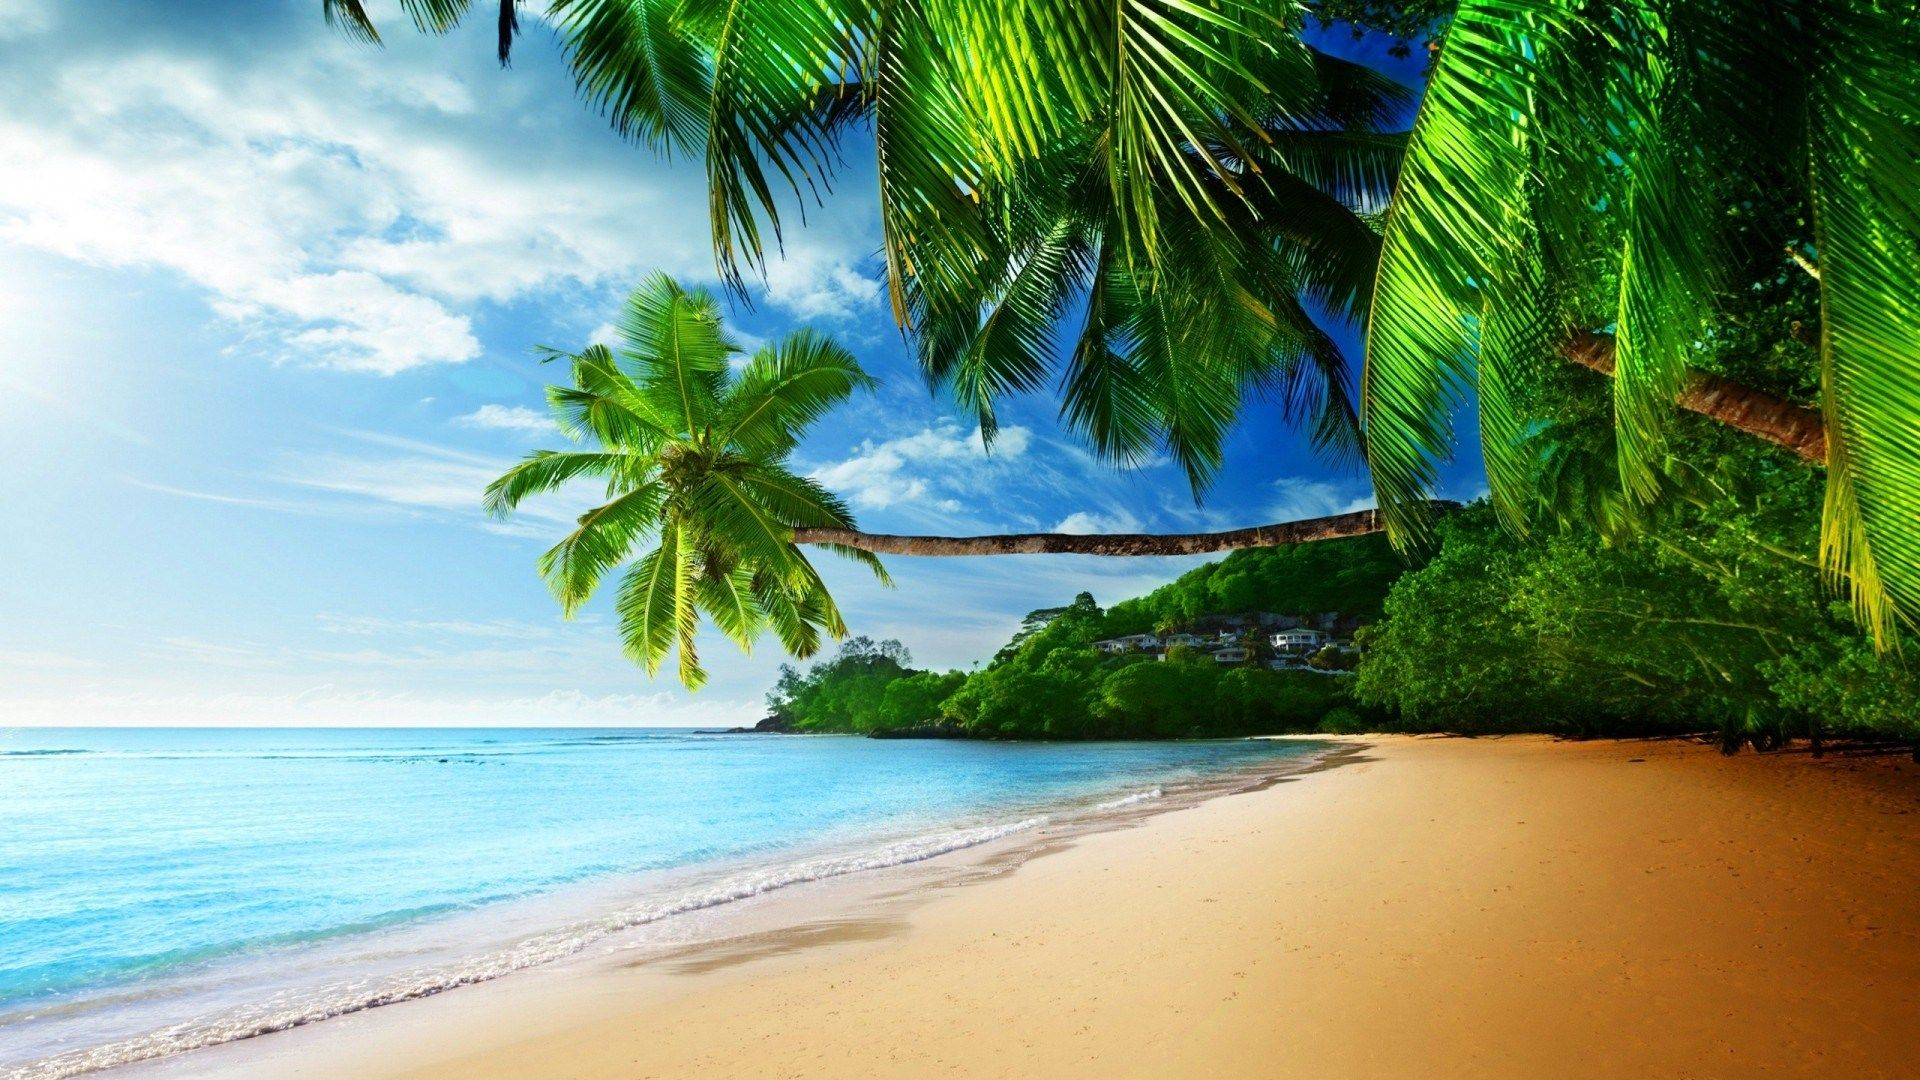 Hd Tropical Island Beach Paradise Wallpapers And Backgrounds: Tropical Beach Waves Wallpapers High Resolution Desktop